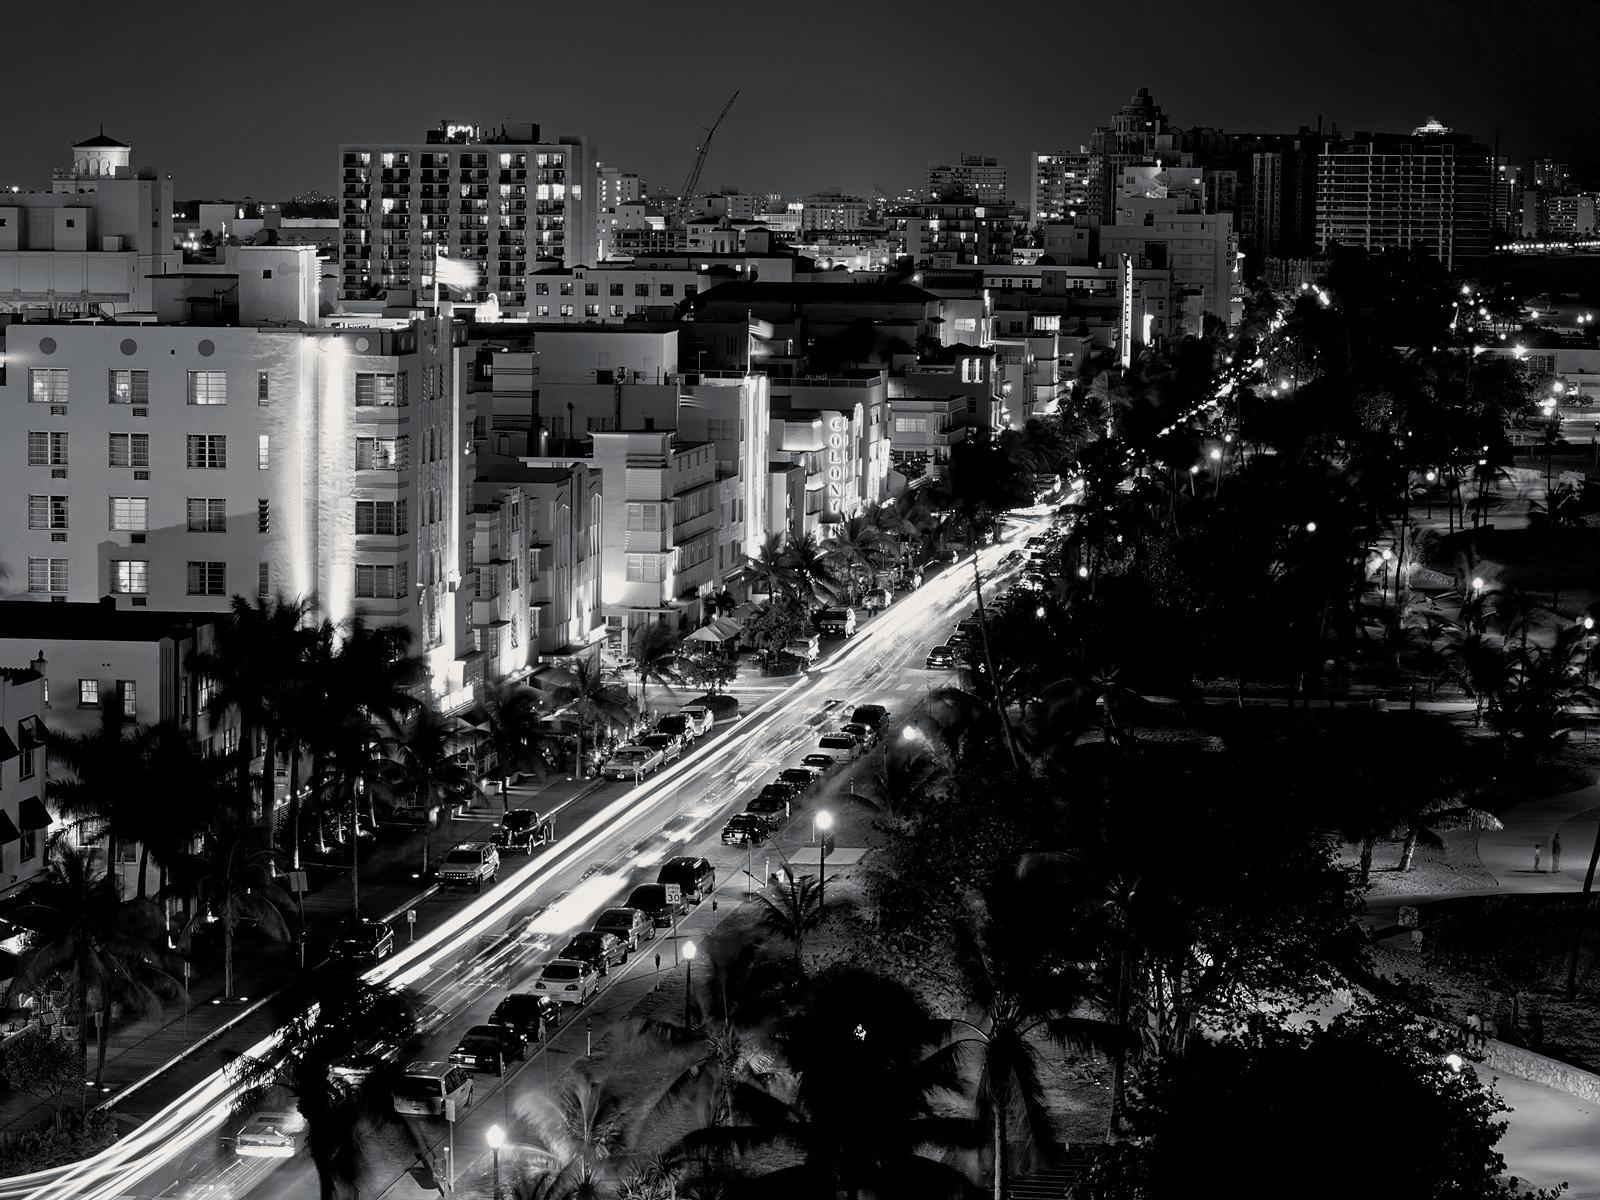 Black And White City Landscape Wallpapers 13643 Full HD Wallpapers